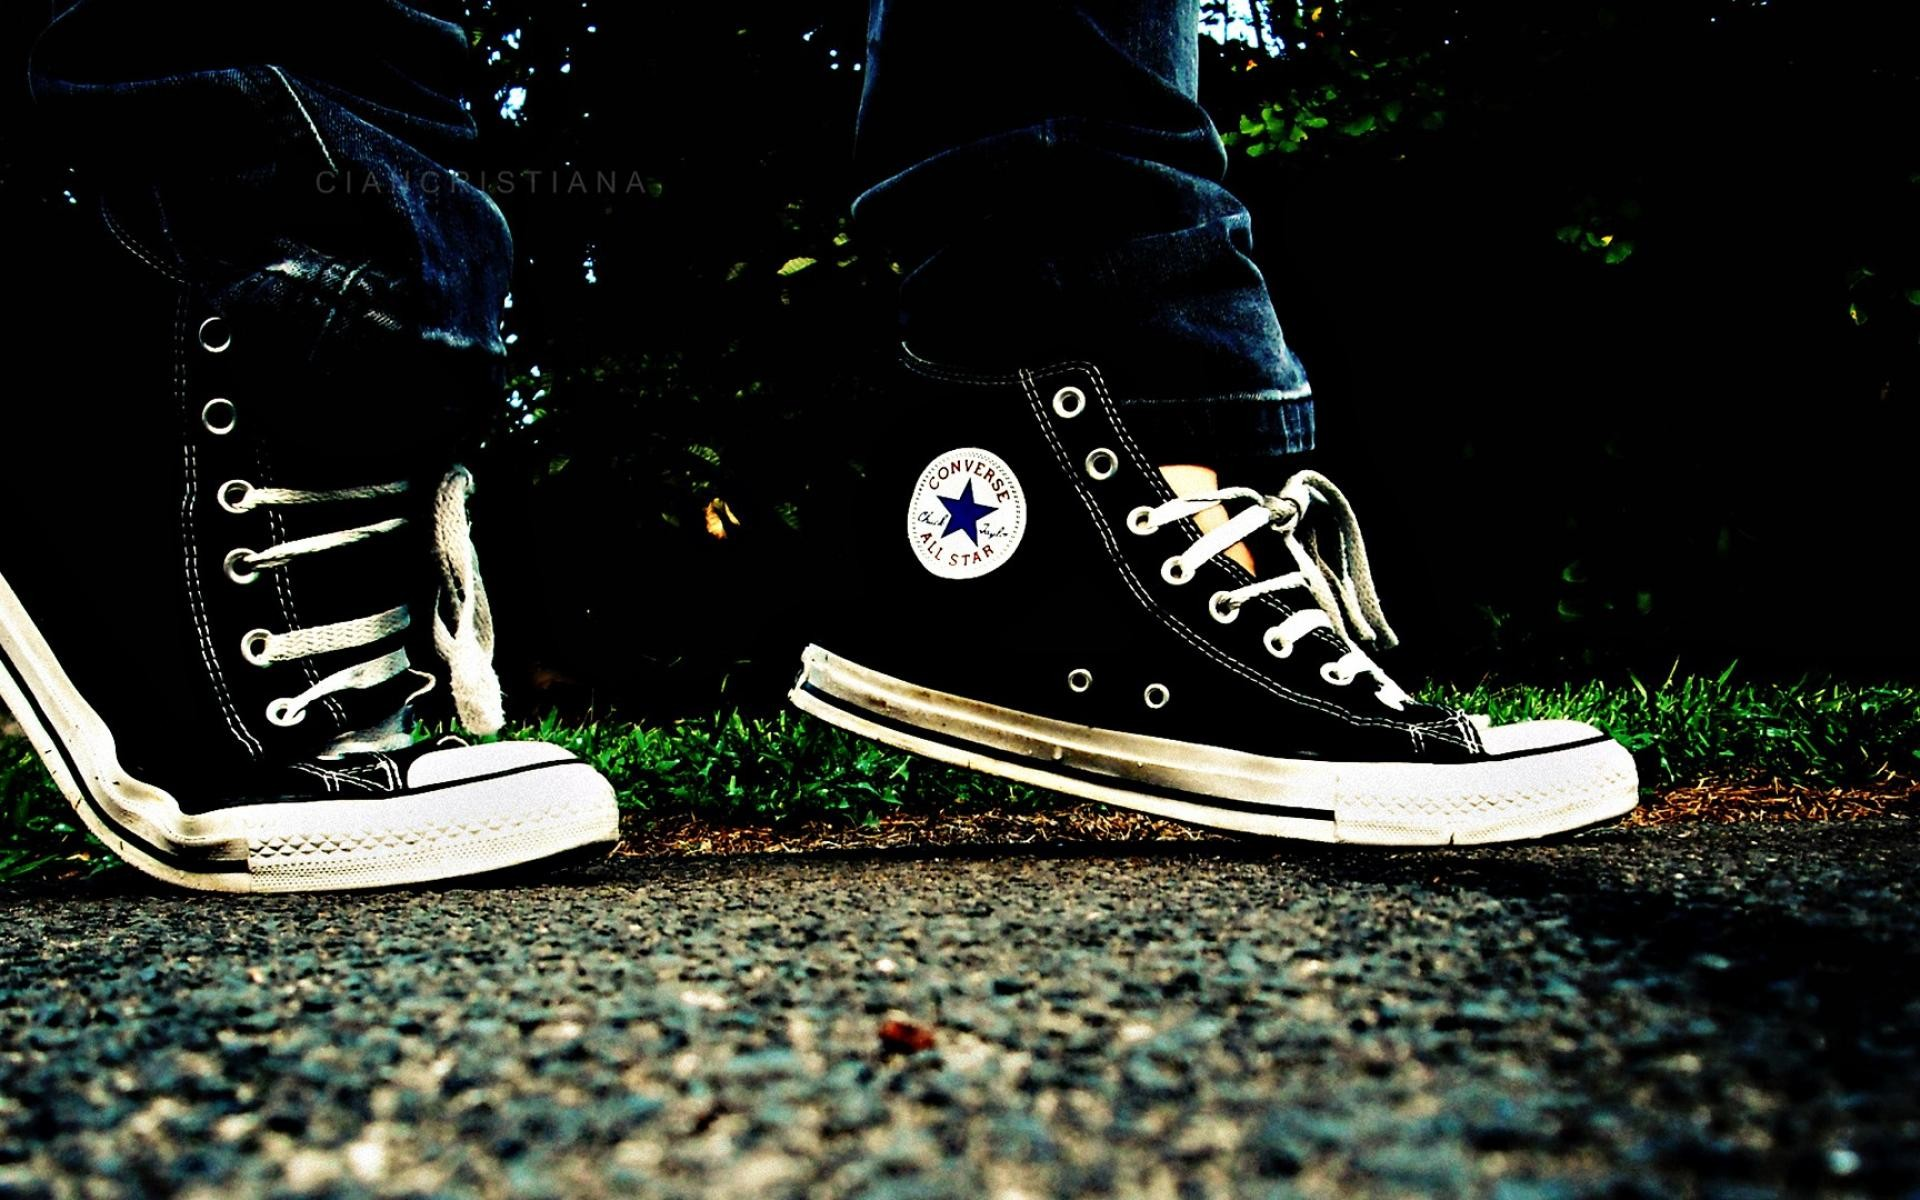 ddfcad5a86a3 1571x2000 CONVERSE LIMITED EDITION ALL STAR HI CANVAS LTD Sneakers Blei  Damen Schuhe